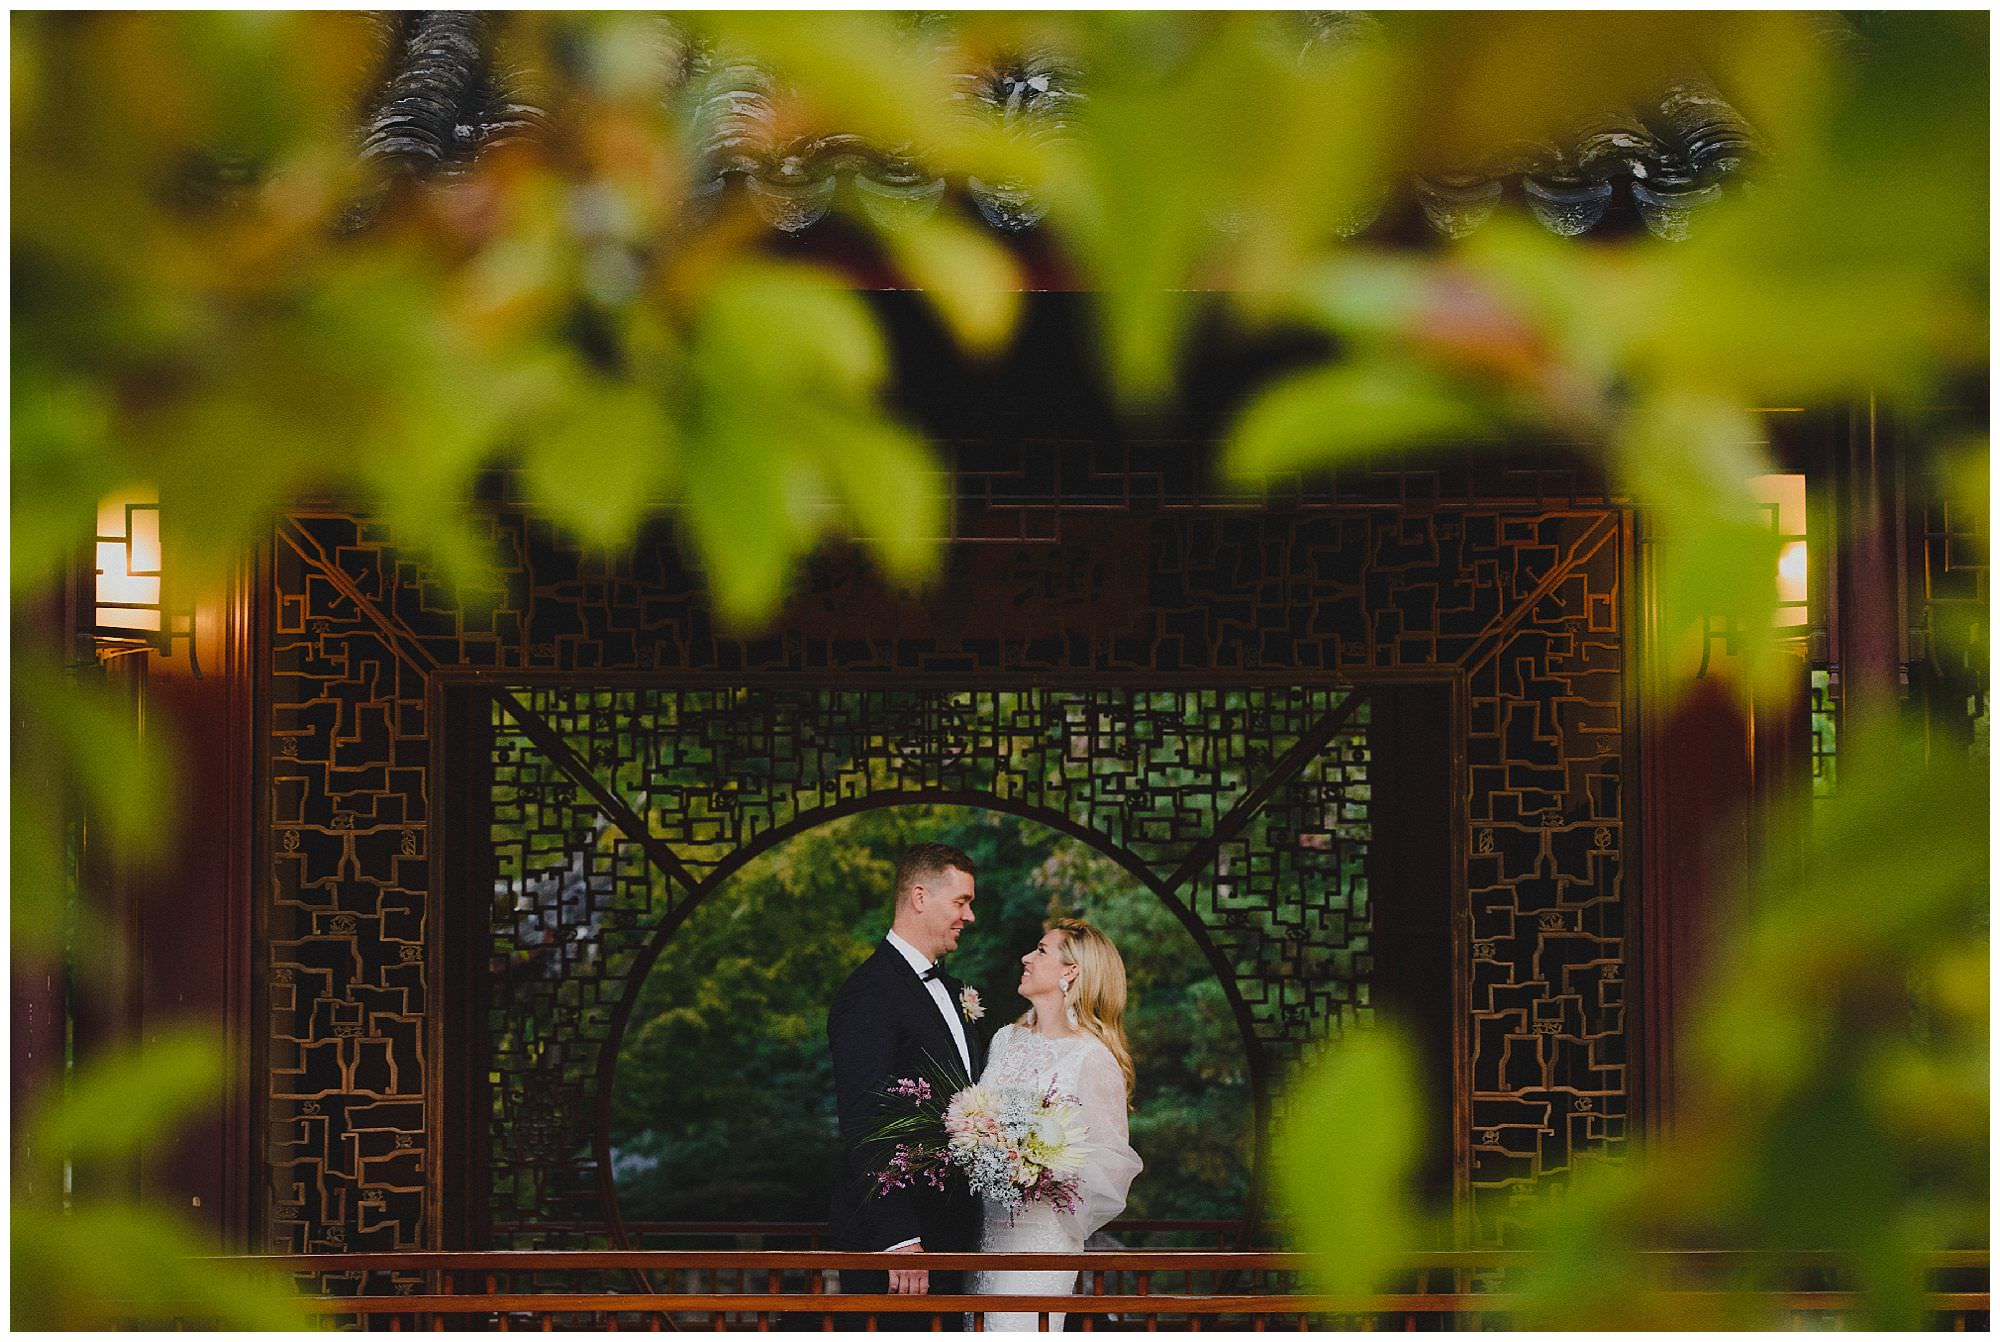 Bride and Groom laughing at sunset after their wedding ceremony at Dr. Sun Yat-Sen Classical Chinese Gardens, elopement, intimate wedding, candid wedding photography